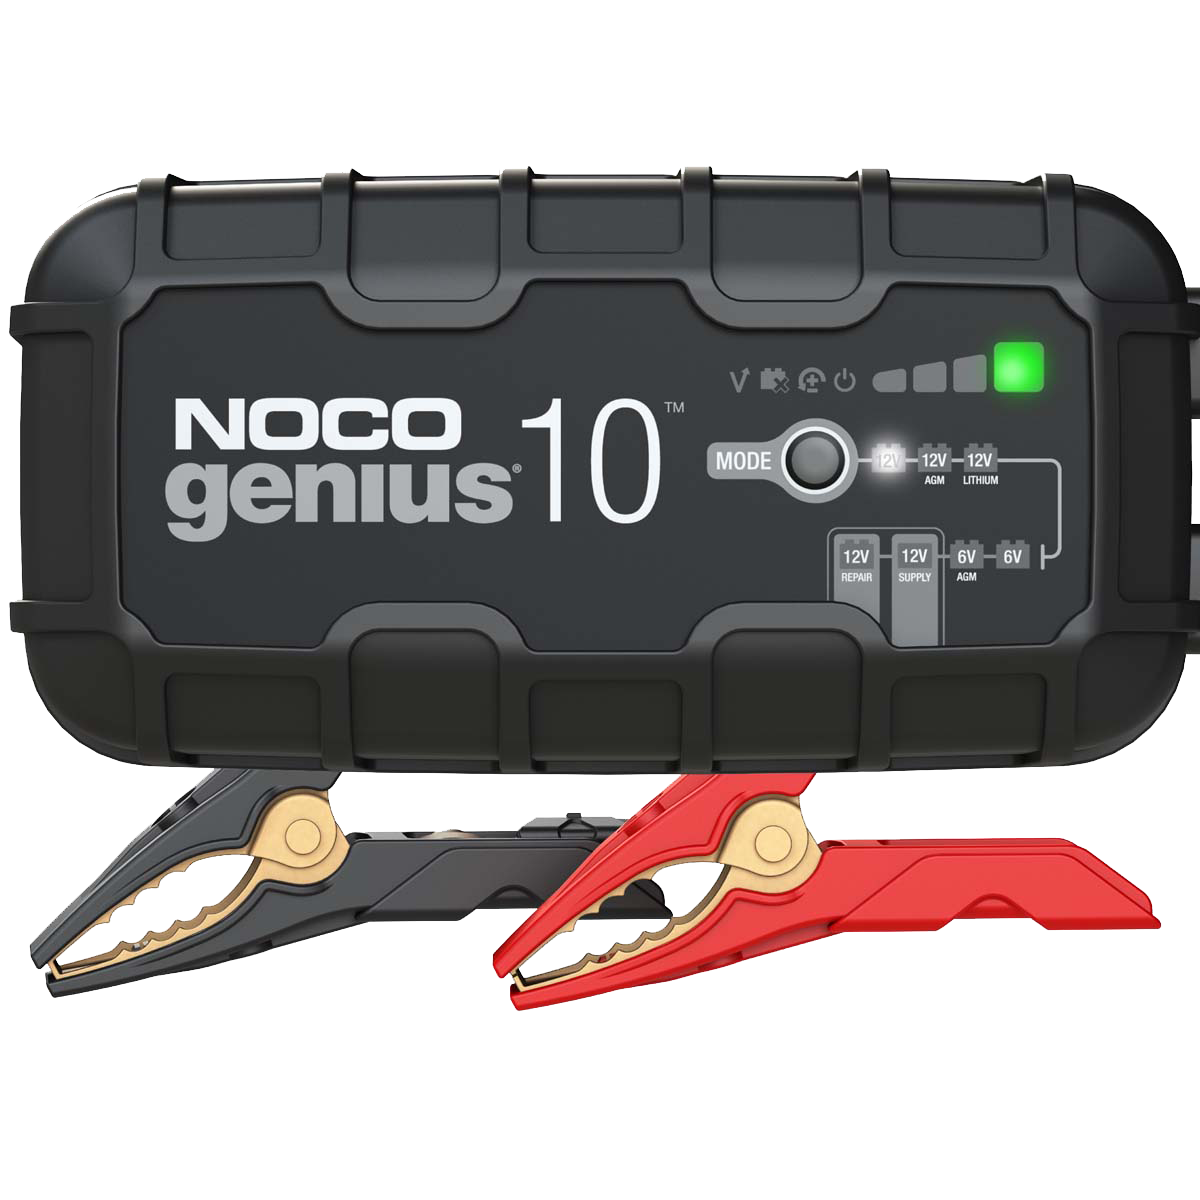 Noco GENIUS10 6V 12V 10A Battery Charger